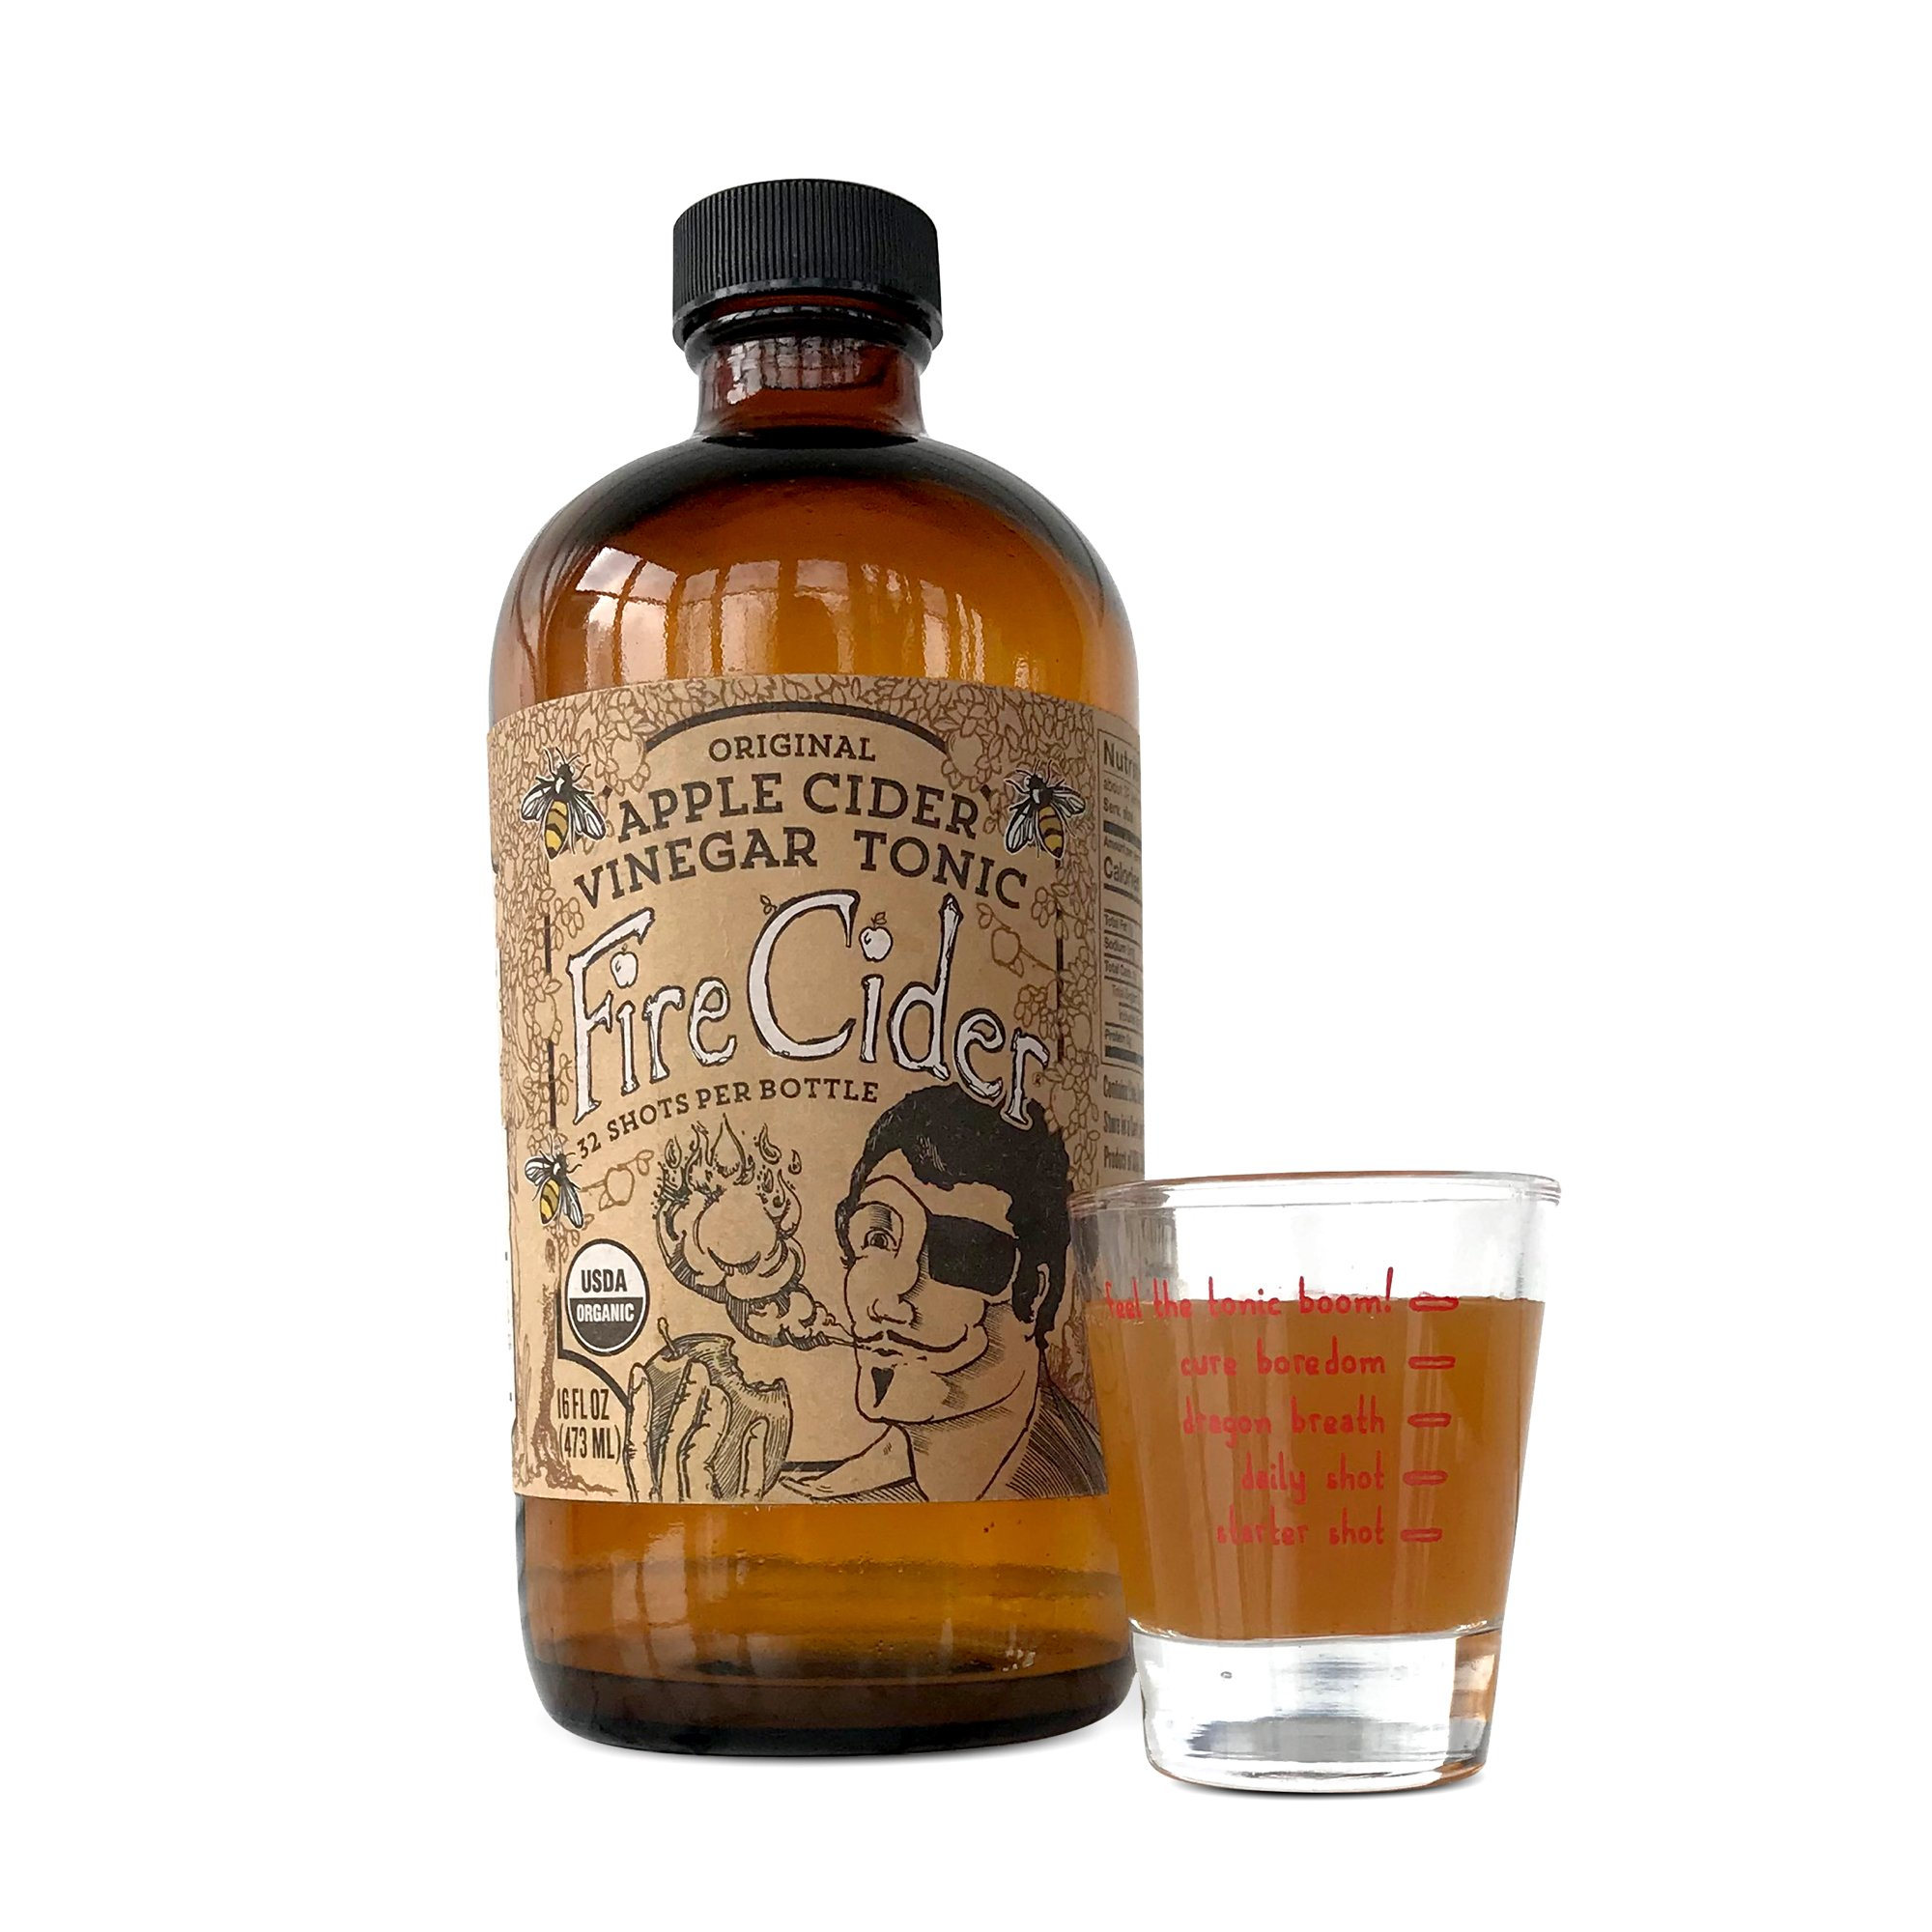 Fire Cider Apple Cider Vinegar Tonic with Honey & Dosage Shot Glass, Original Flavor, Natural Detox & Cleansing, Pure & Raw, Certified Organic Ingredients, No Heat Processed, 32 Shots, 16 oz.